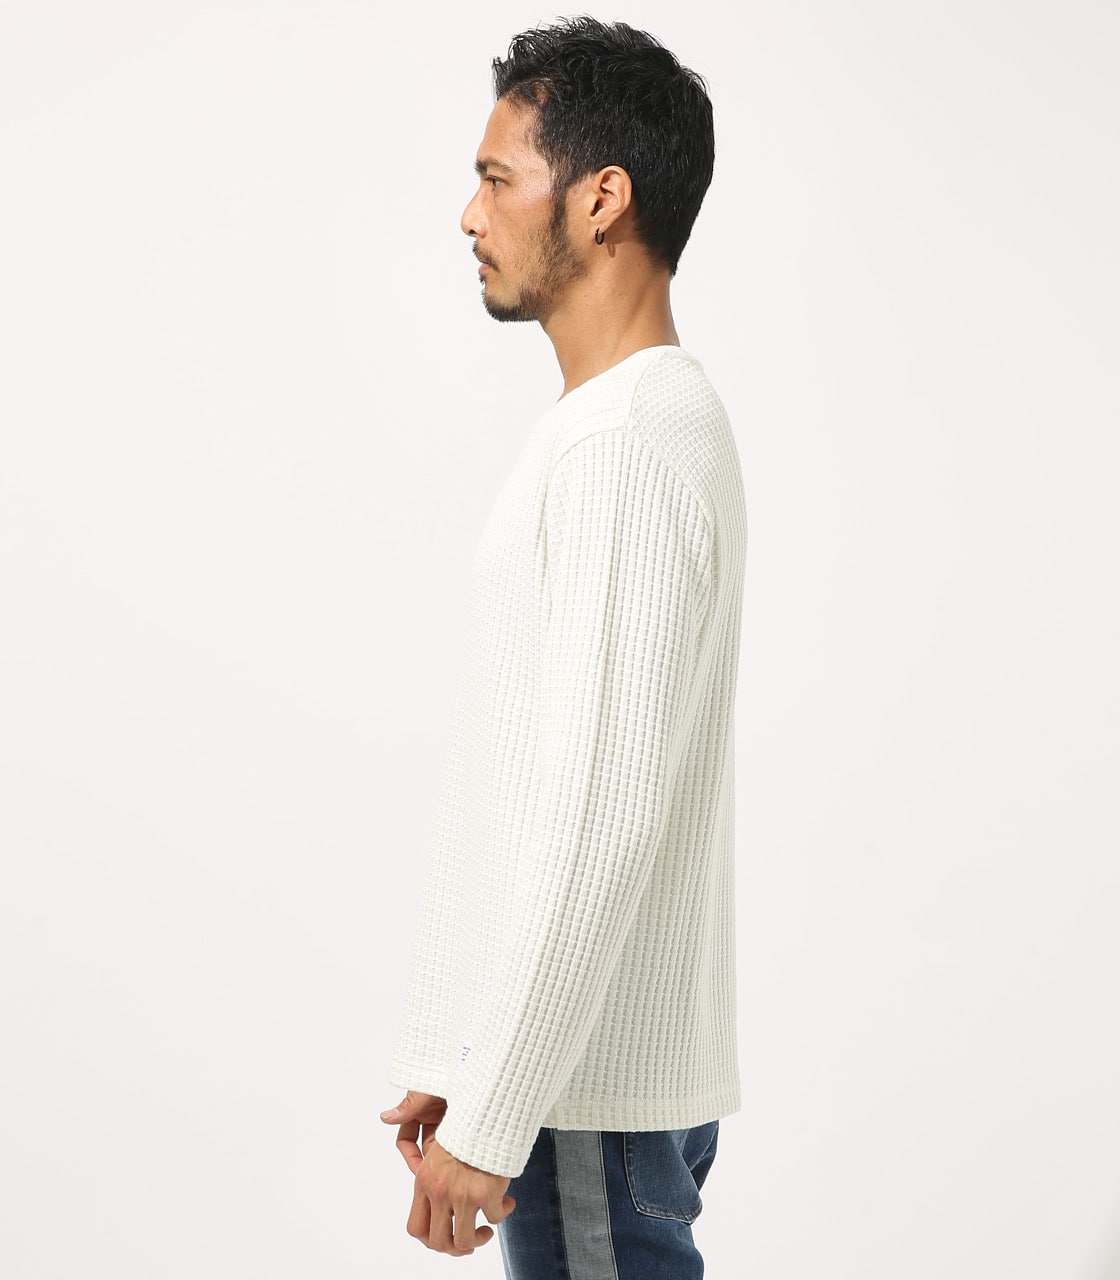 【AZUL BY MOUSSY】BIG WAFFLE LONG SLEEVE 詳細画像 WHT 6